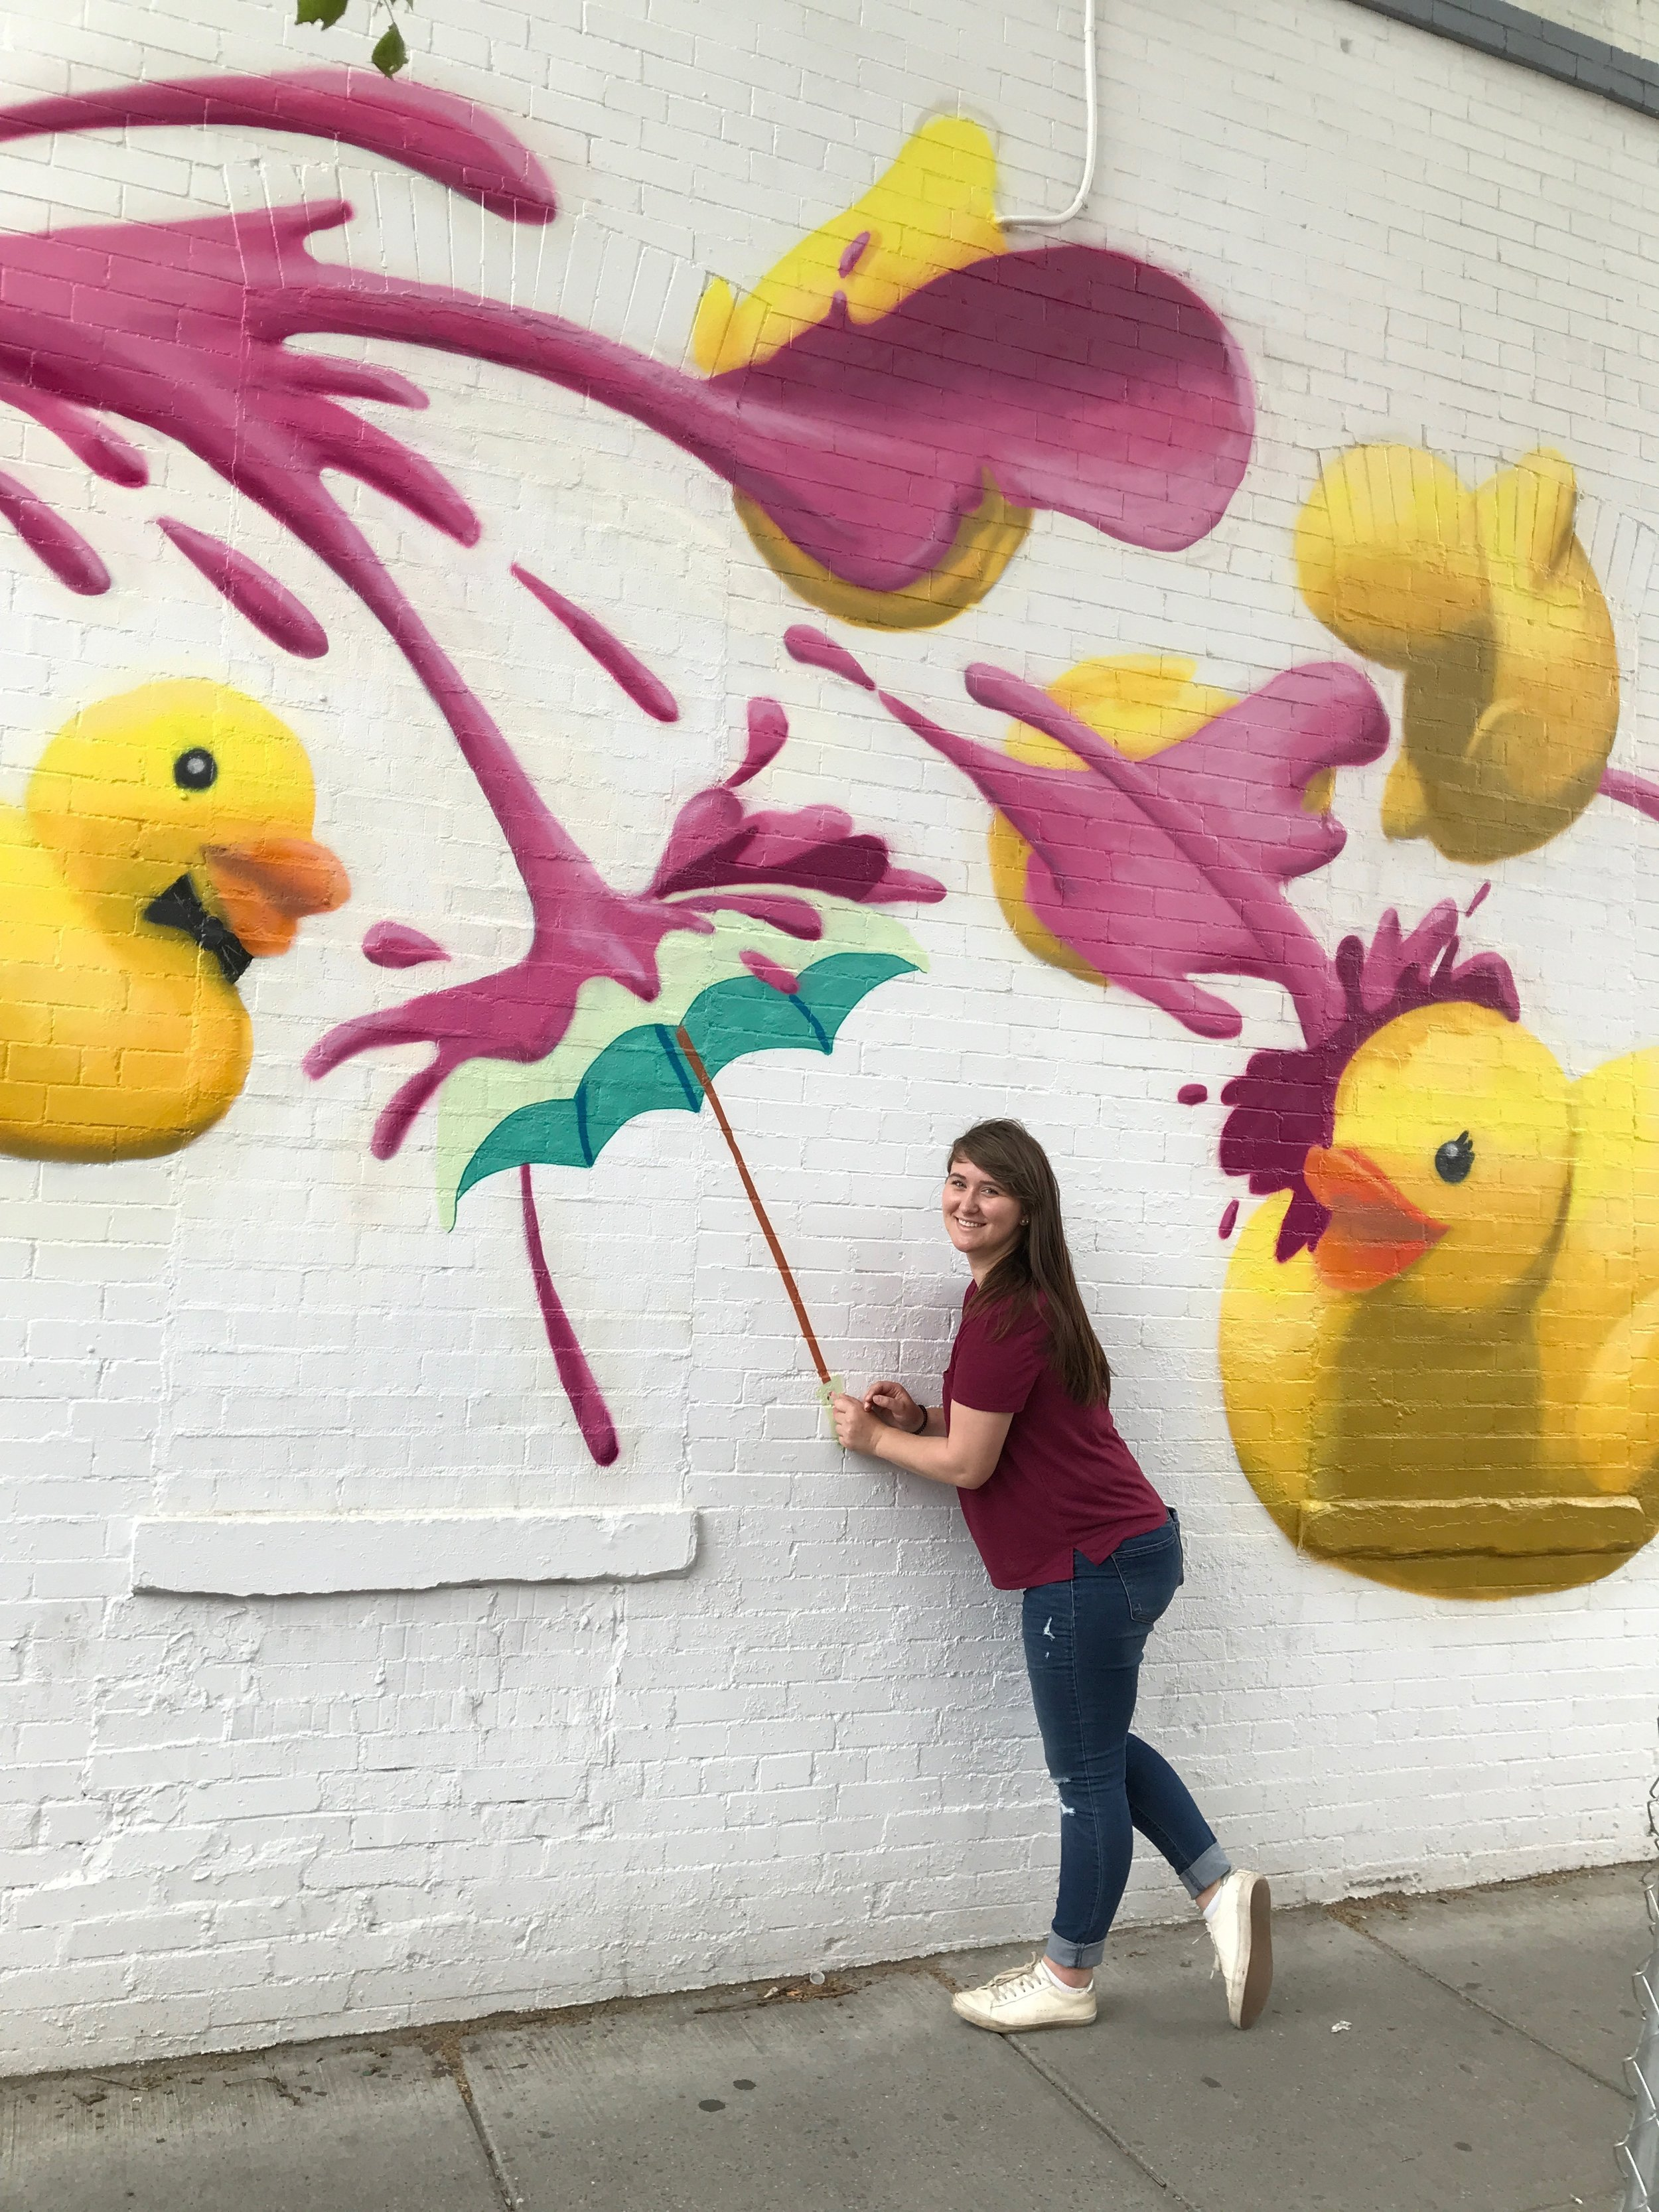 Rubber Ducky Mural in Washington, D.C. | Best Instagram Murals